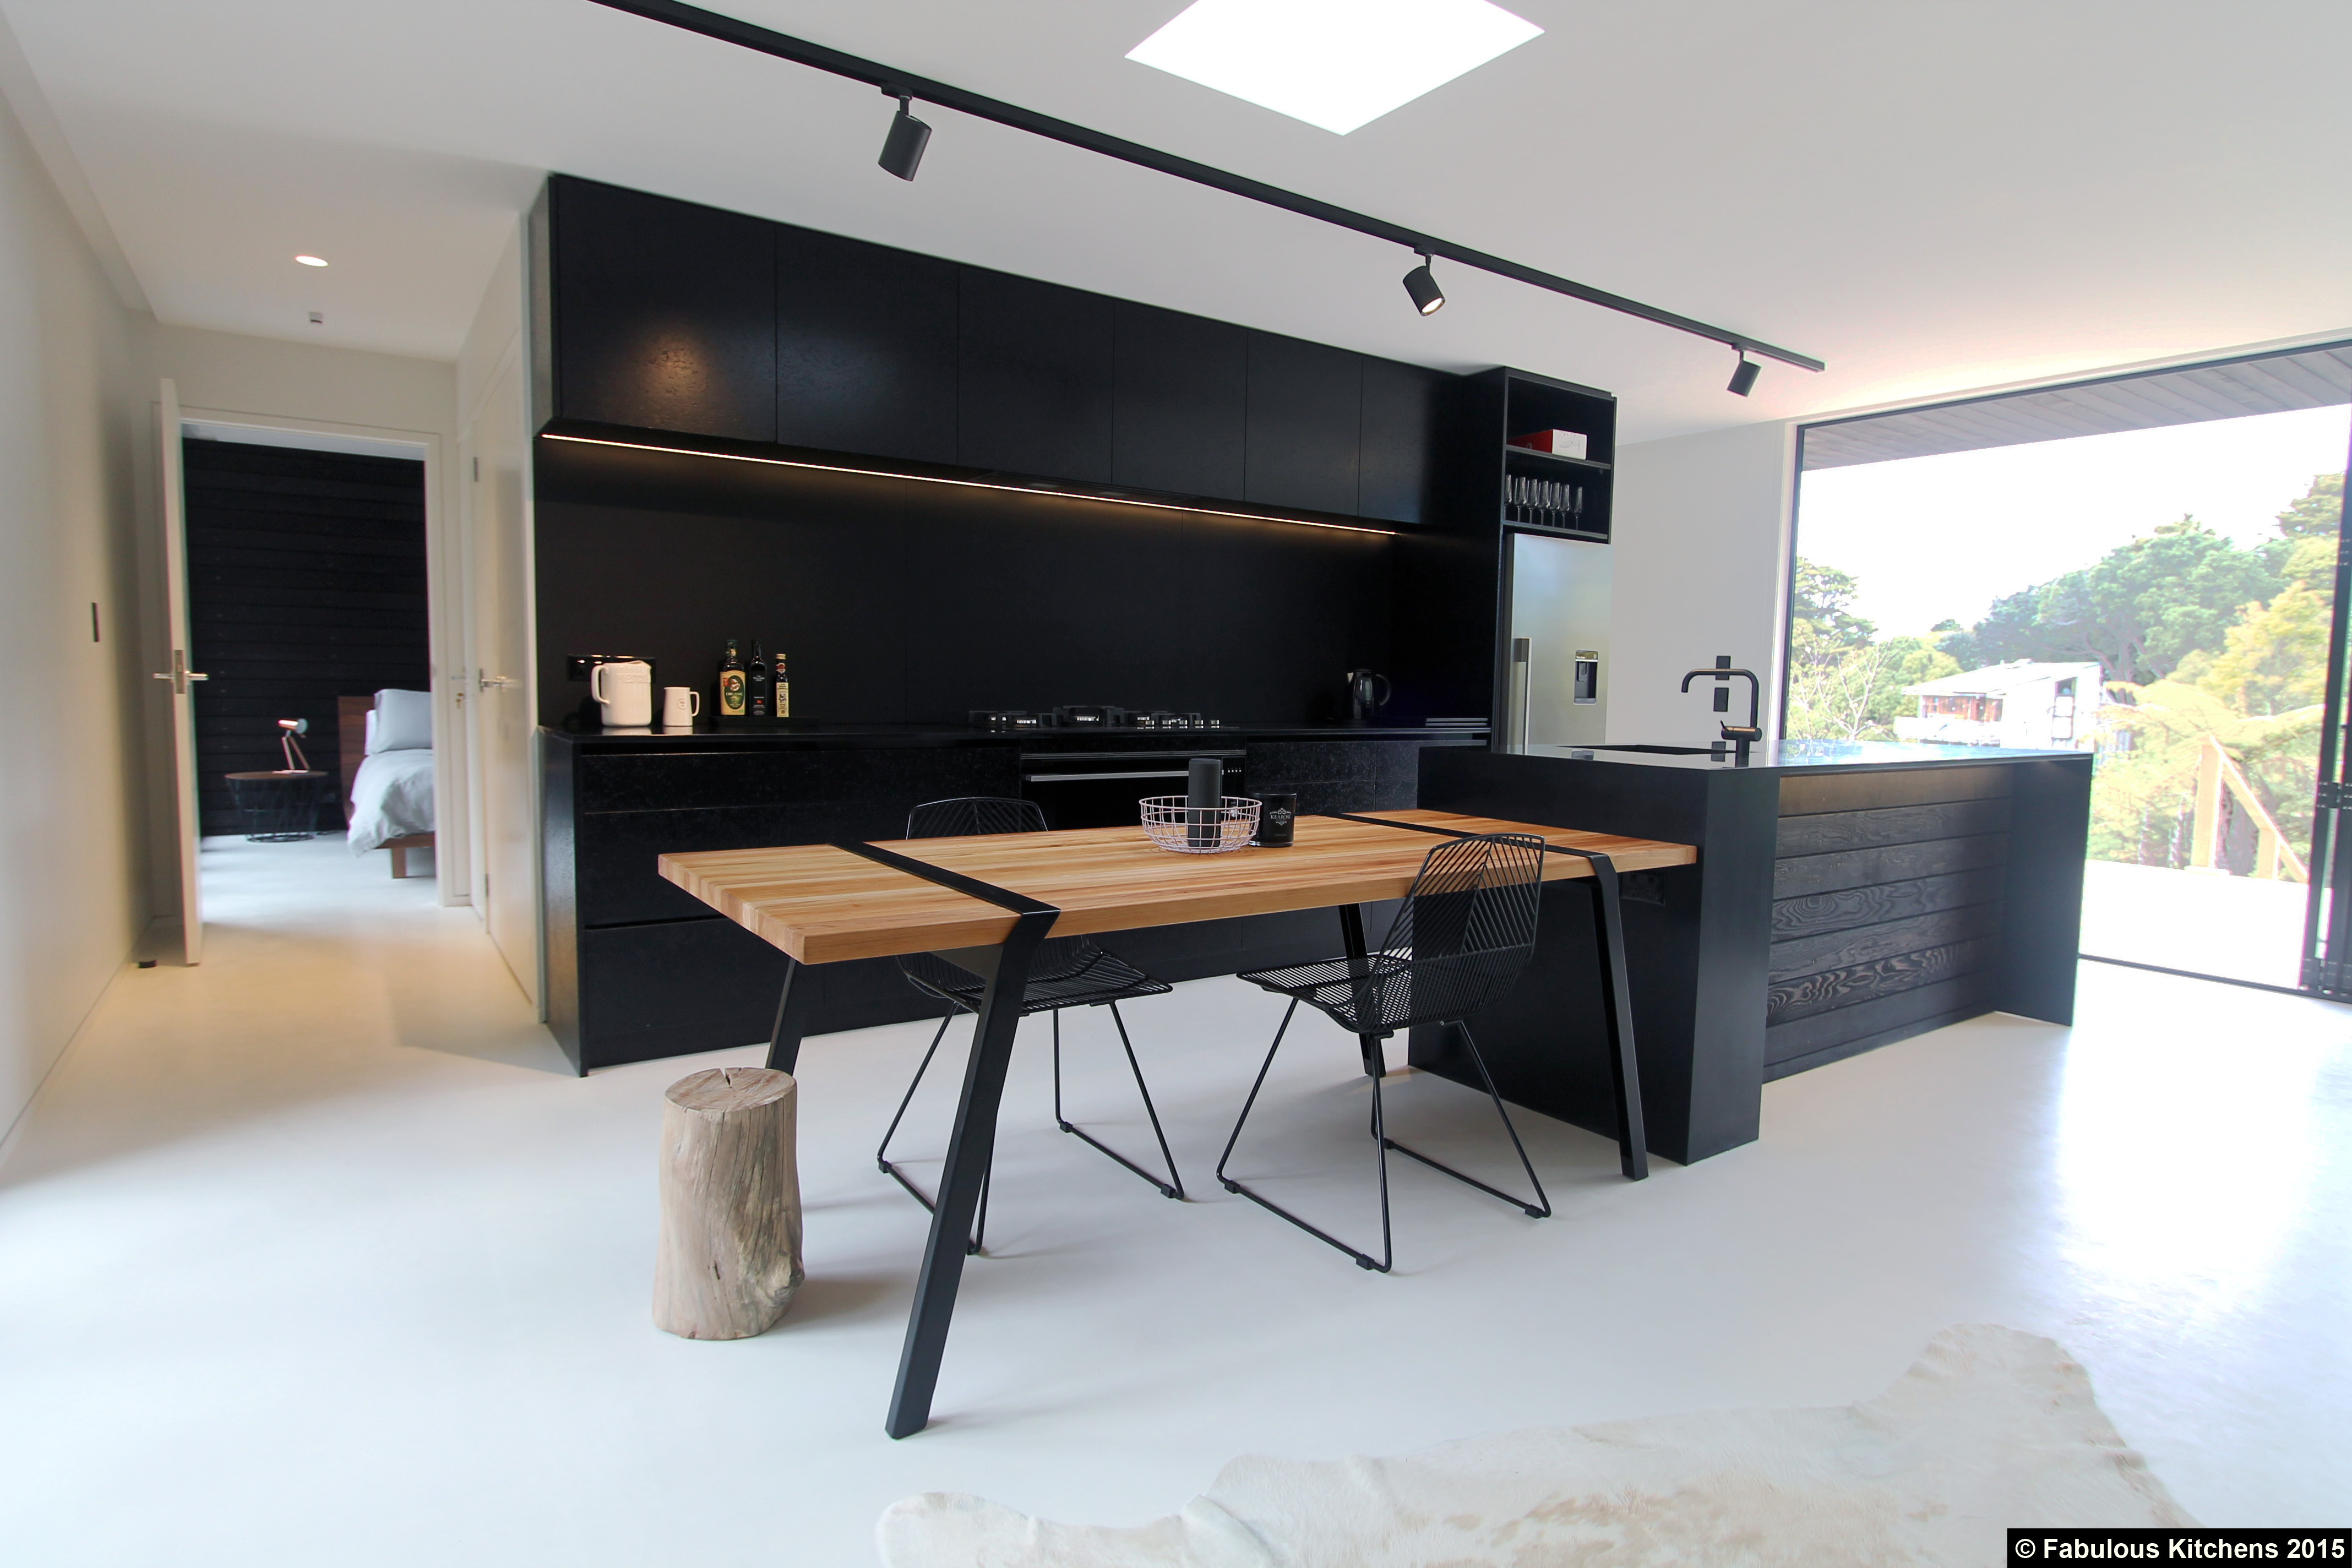 Gallery 48 waiheke island gallery fabulous kitchens for Fabulous kitchens